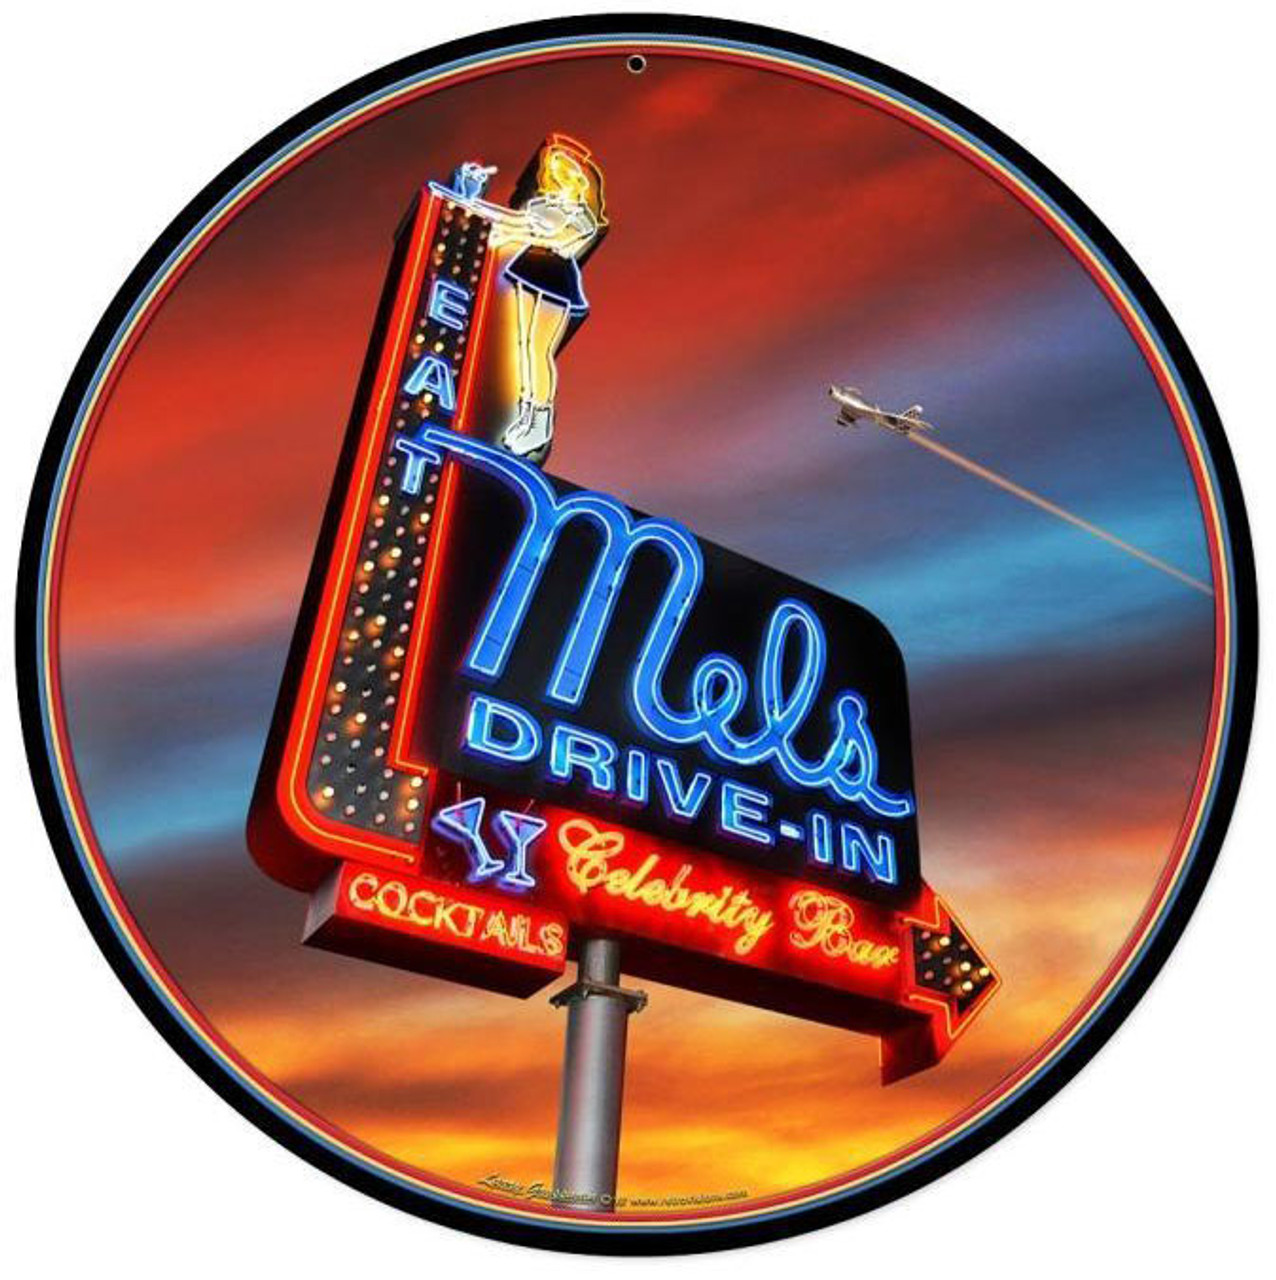 Mels Sunset Round Metal Sign 14 x 14 Inches